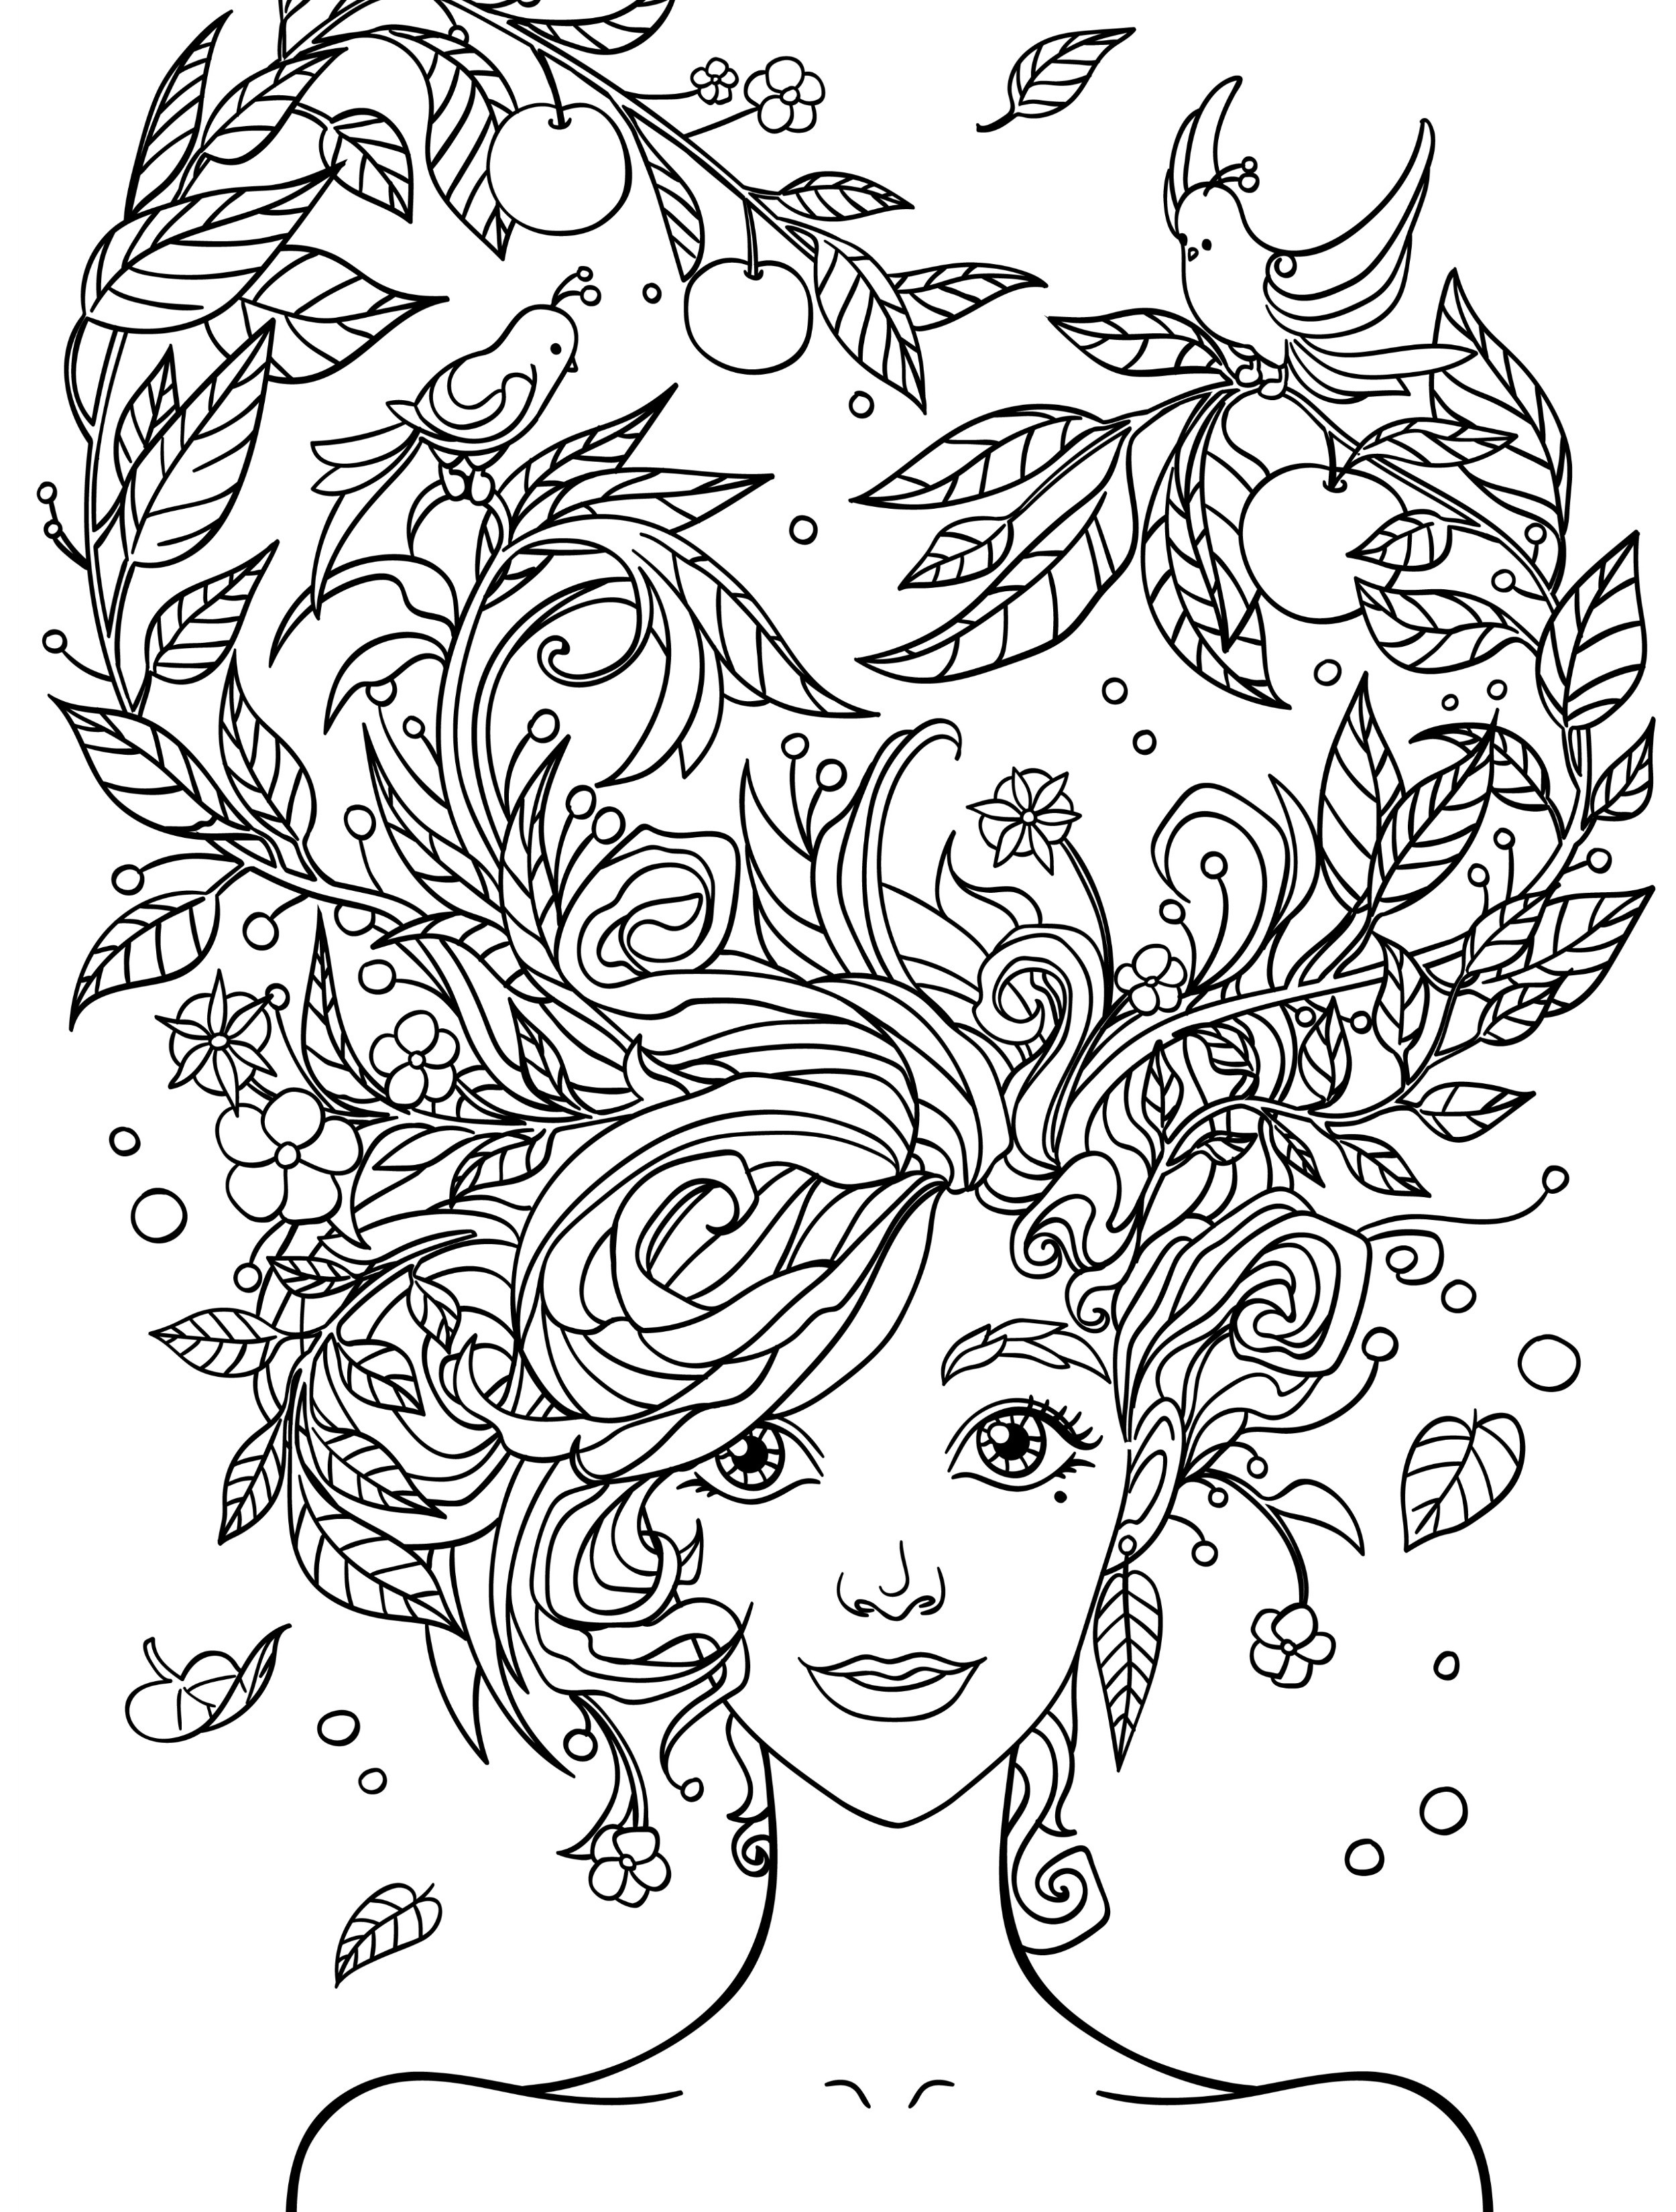 Best ideas about Design Coloring Pages For Girls . Save or Pin 10 Crazy Hair Adult Coloring Pages Page 5 of 12 Nerdy Now.